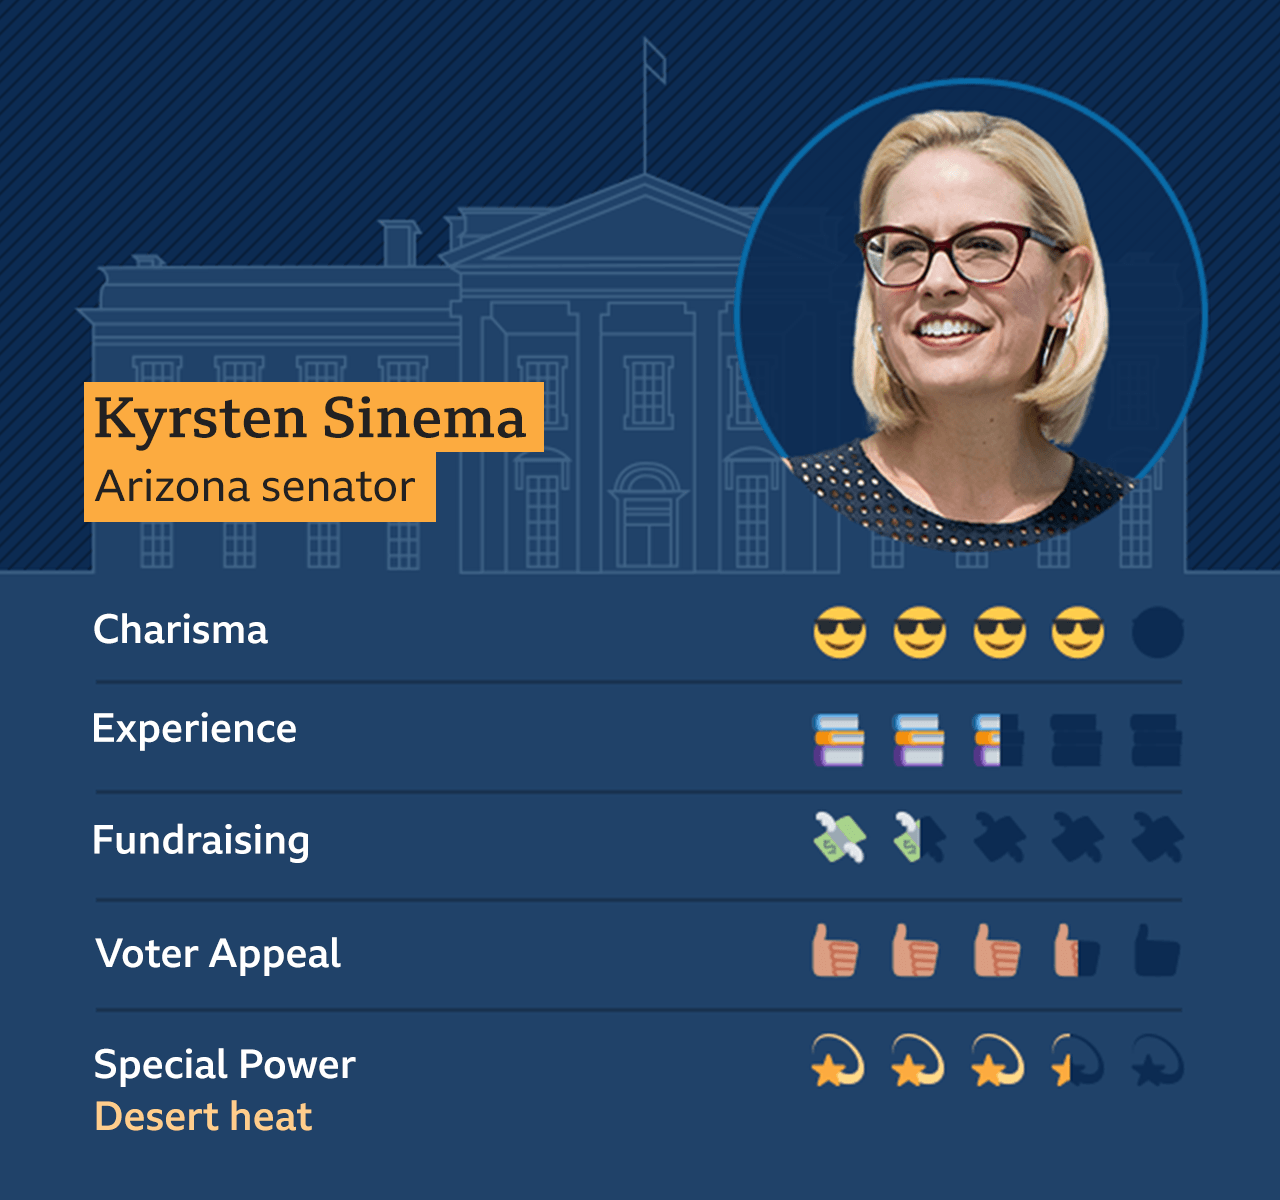 Graphic of Krysten Sinema, Arizona Senator: Charisma - 4, Experience - 2.5, Fundraising - 1.5, Voter appeal - 3.5, Special Power - Desert heat - 3.5